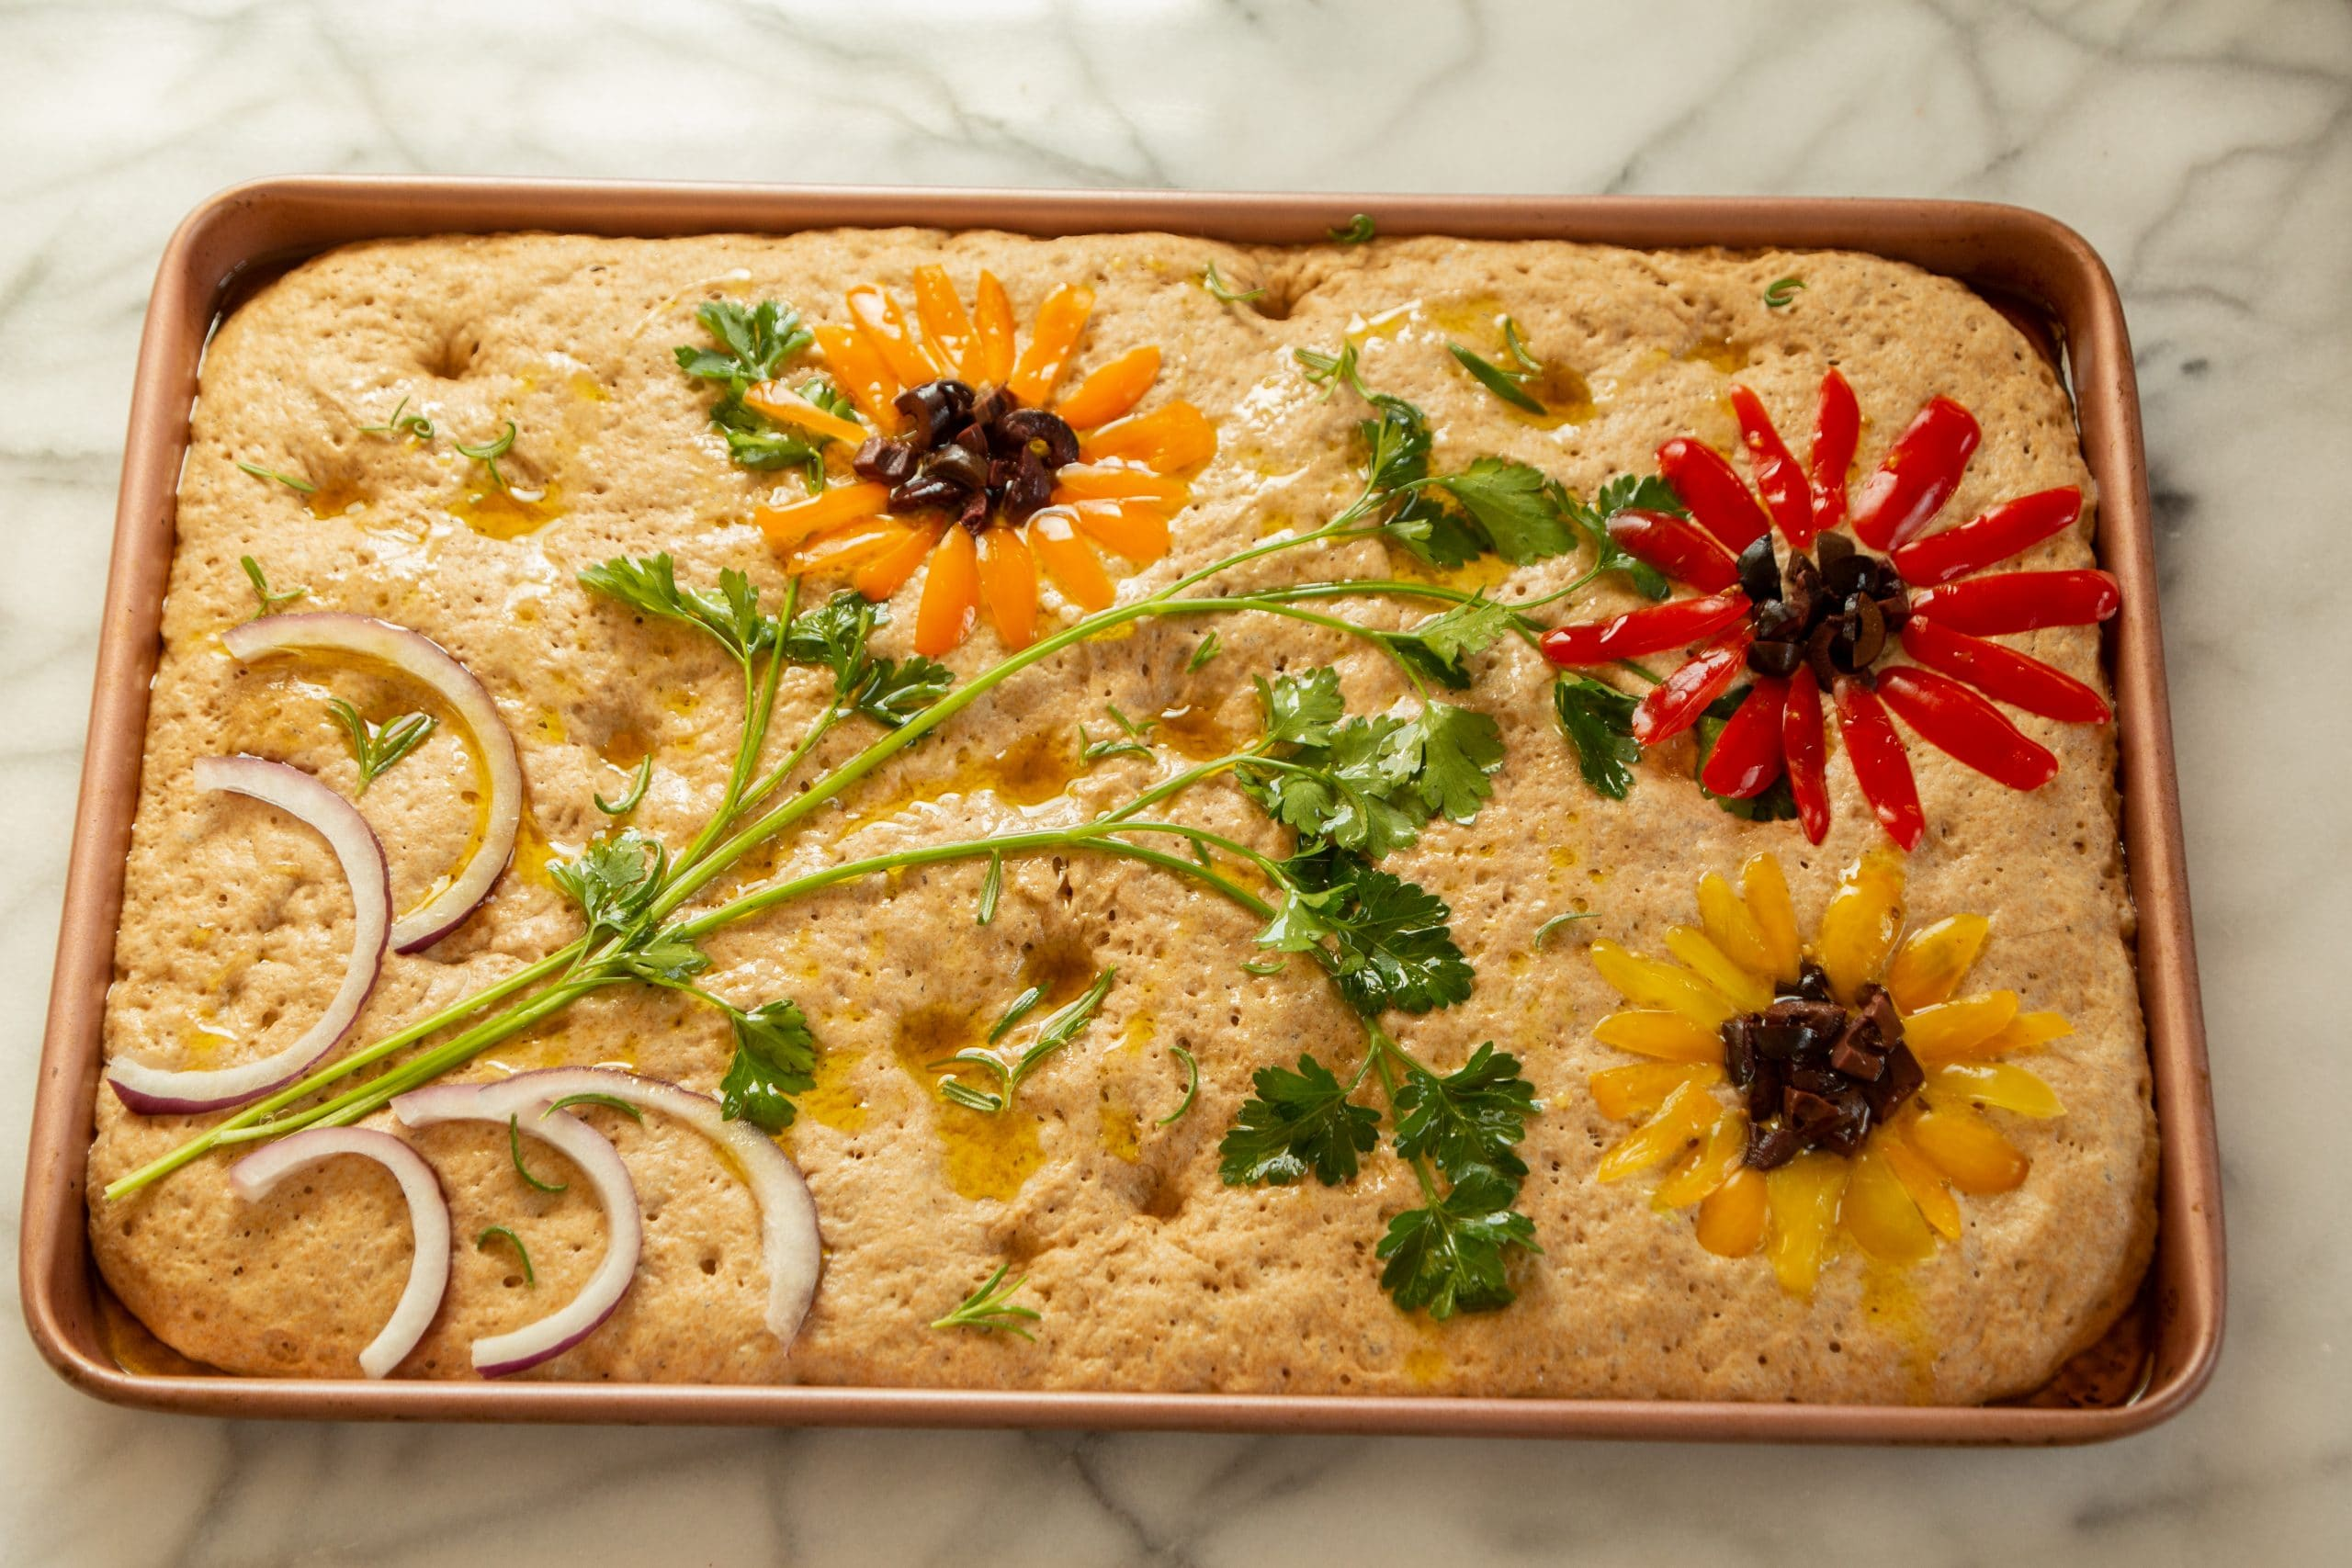 Make A Decorated Focaccia Brighten The Day Chef And Author Robin Asbell